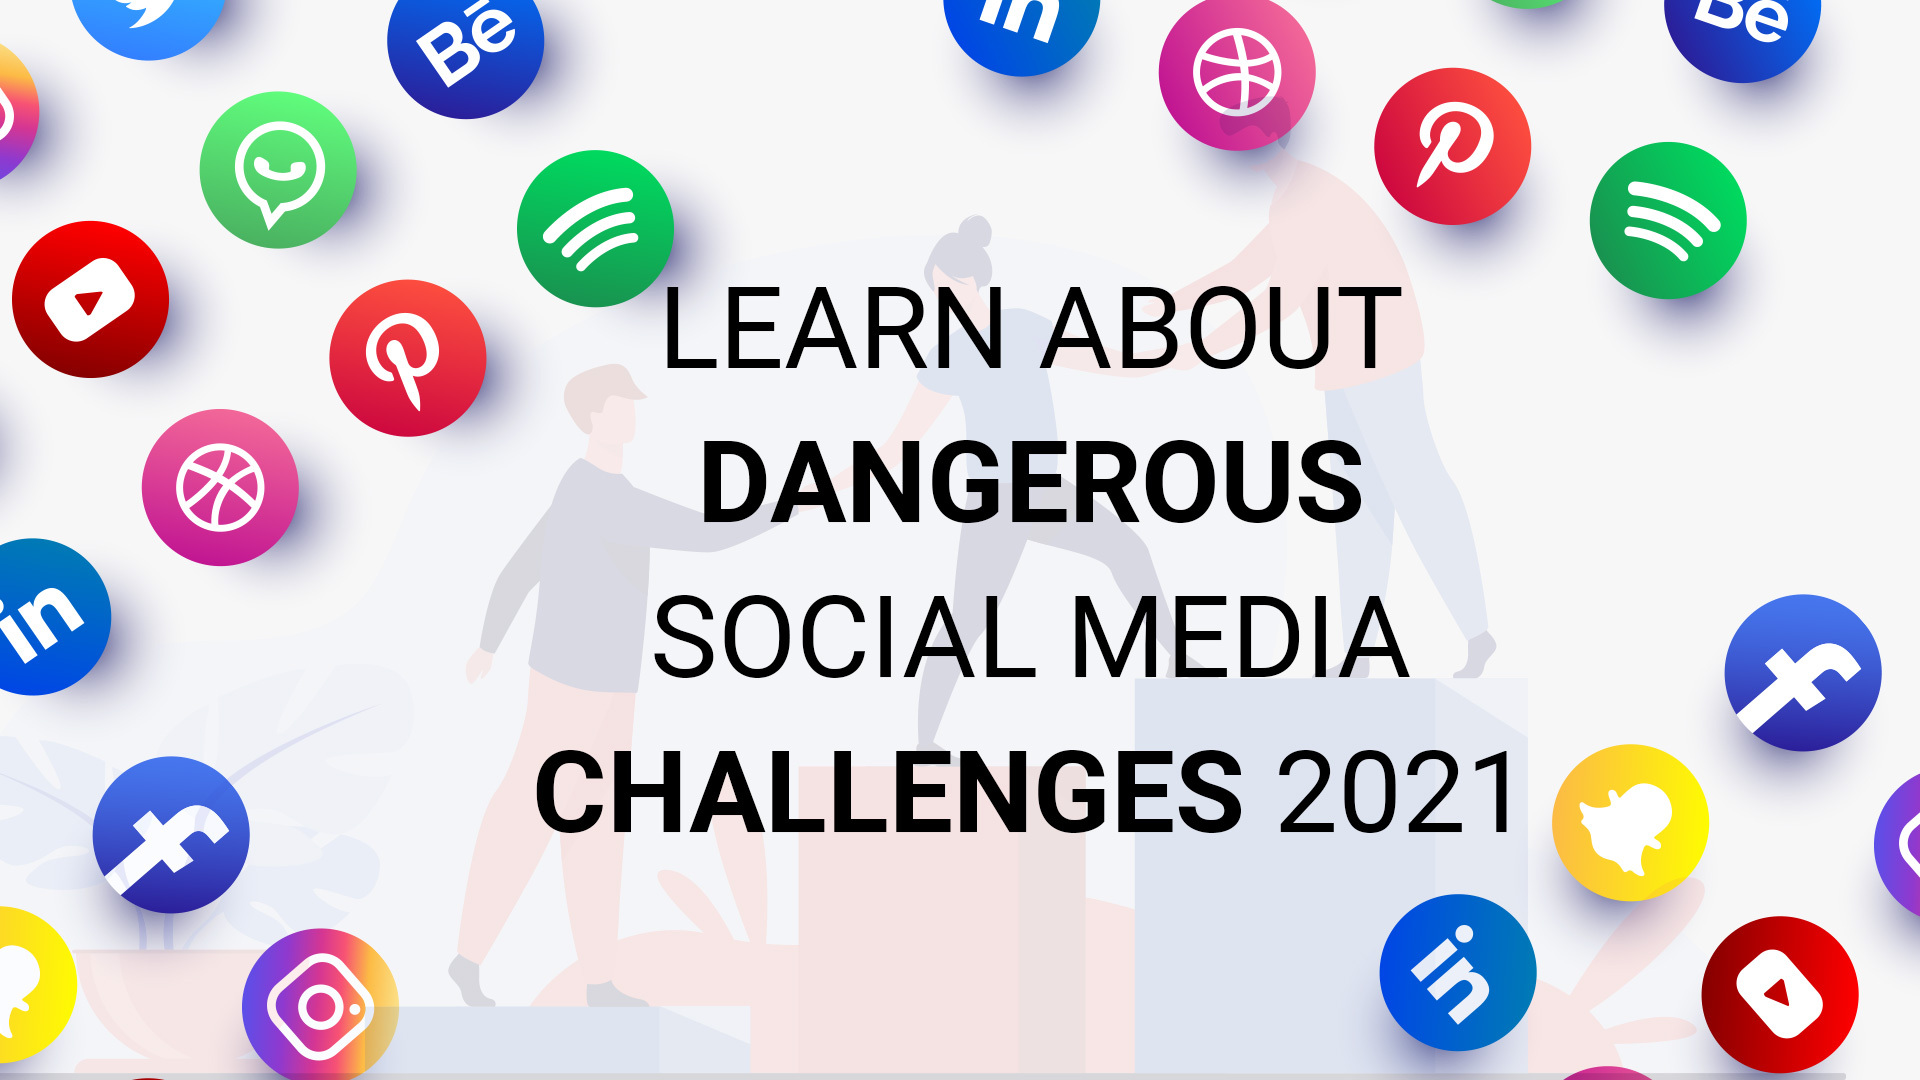 Learn About Dangerous Social Media Challenges 2021 & How to Get Ready for It?